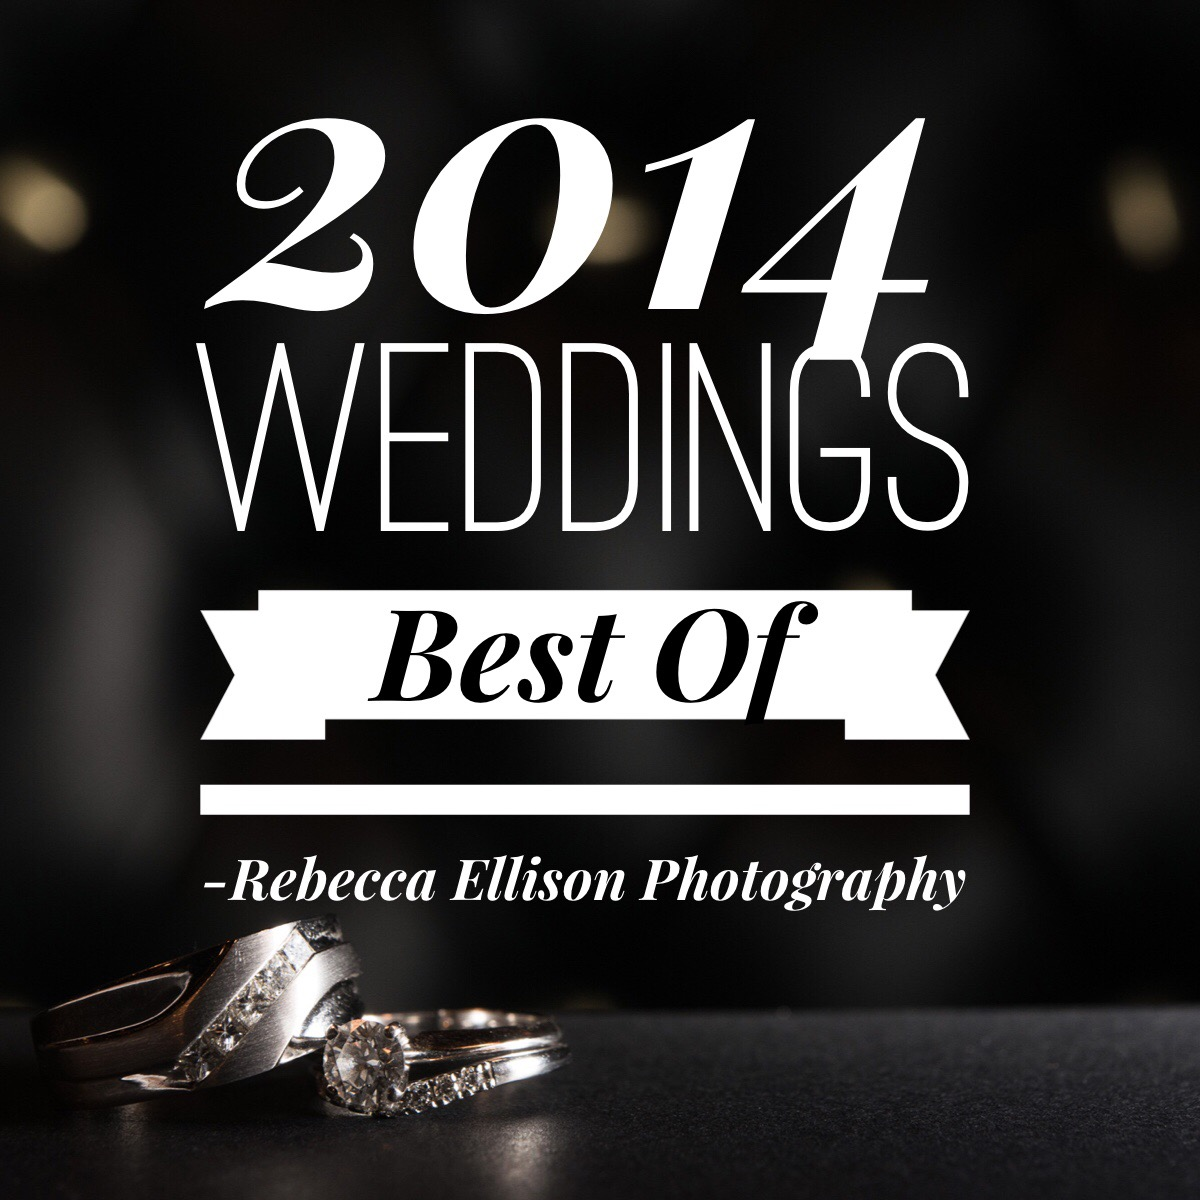 2014 Weddings Best of